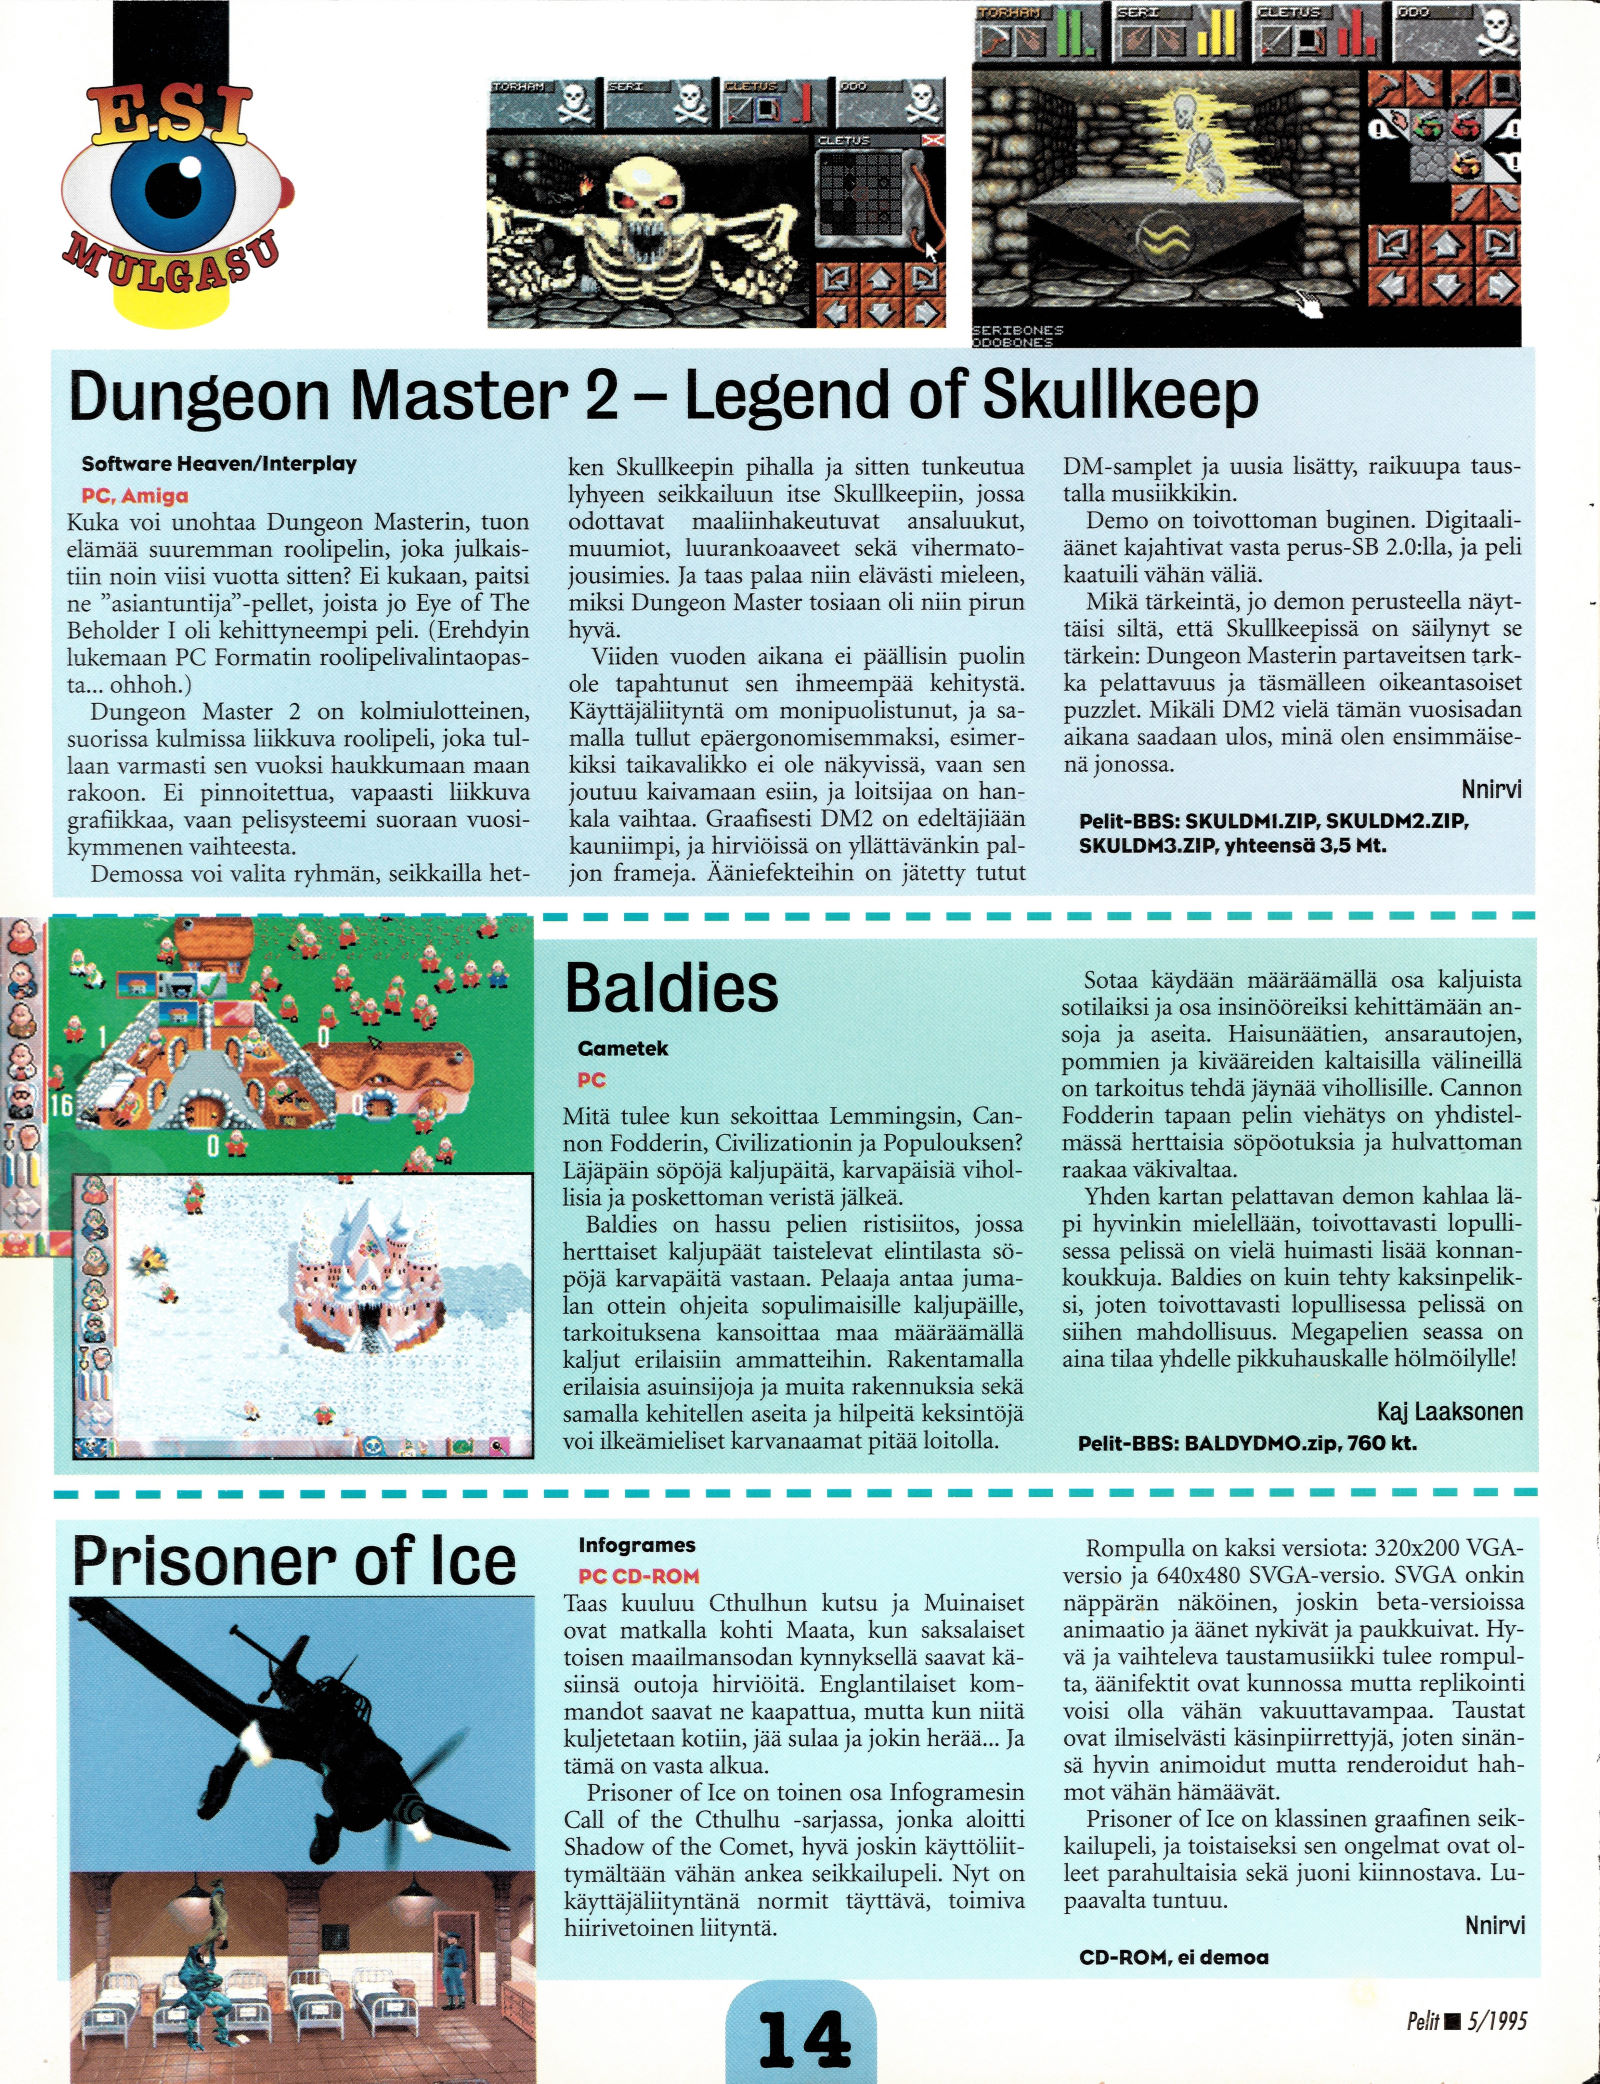 Dungeon Master II for PC-Amiga Preview published in Finnish magazine 'Pelit', May 1995, Page 14